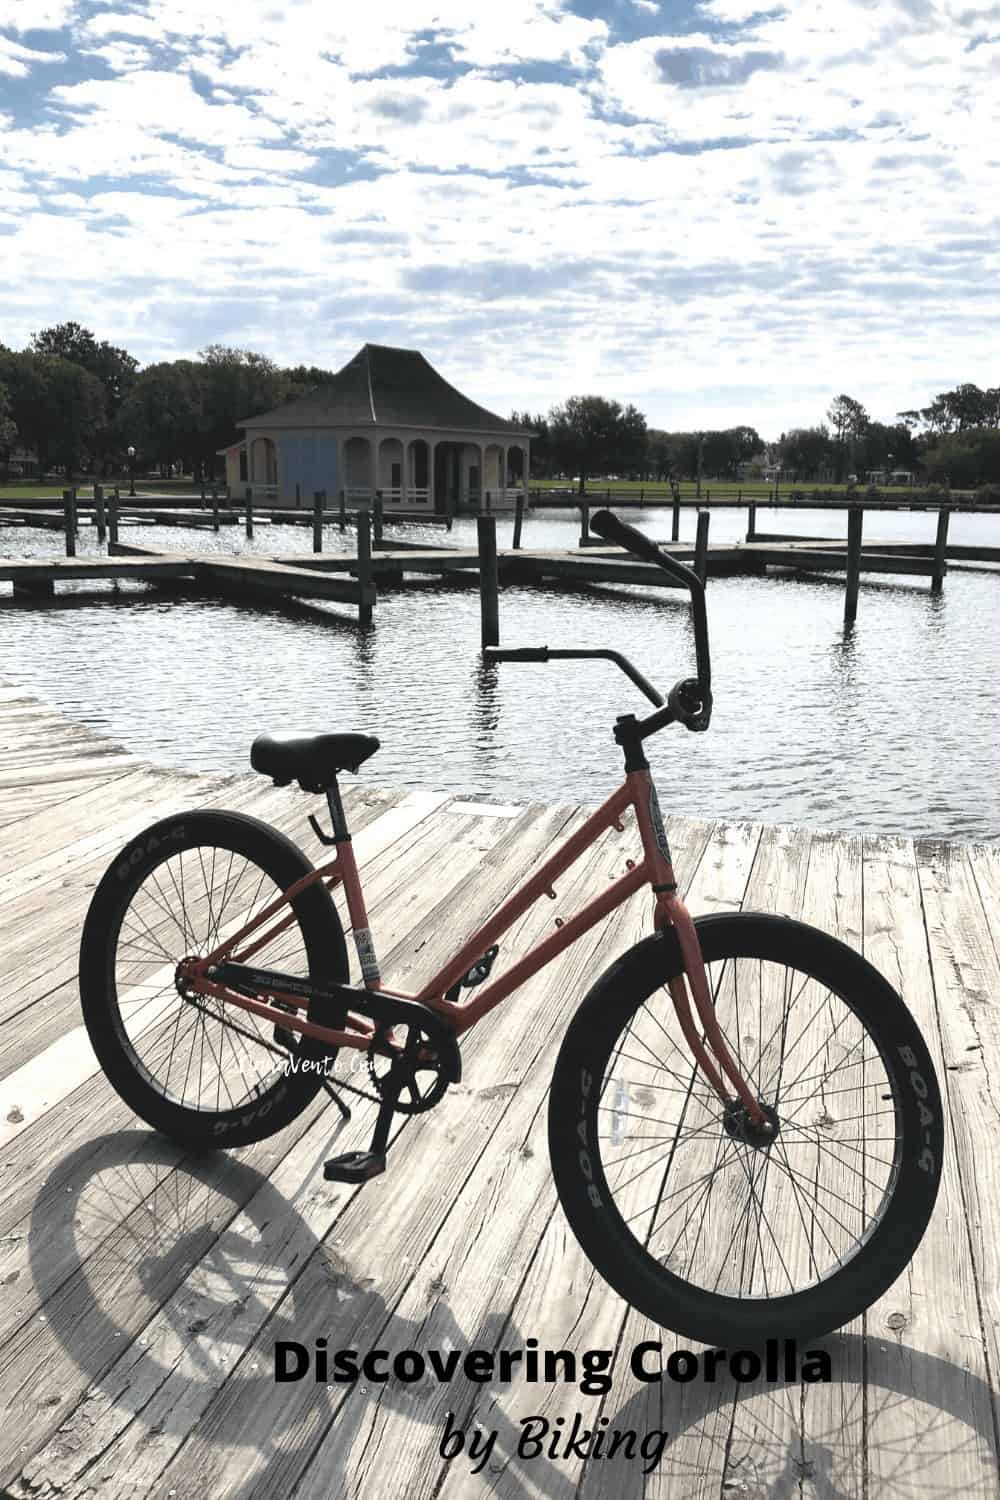 Bike parked at Corolla Historic Park by piers